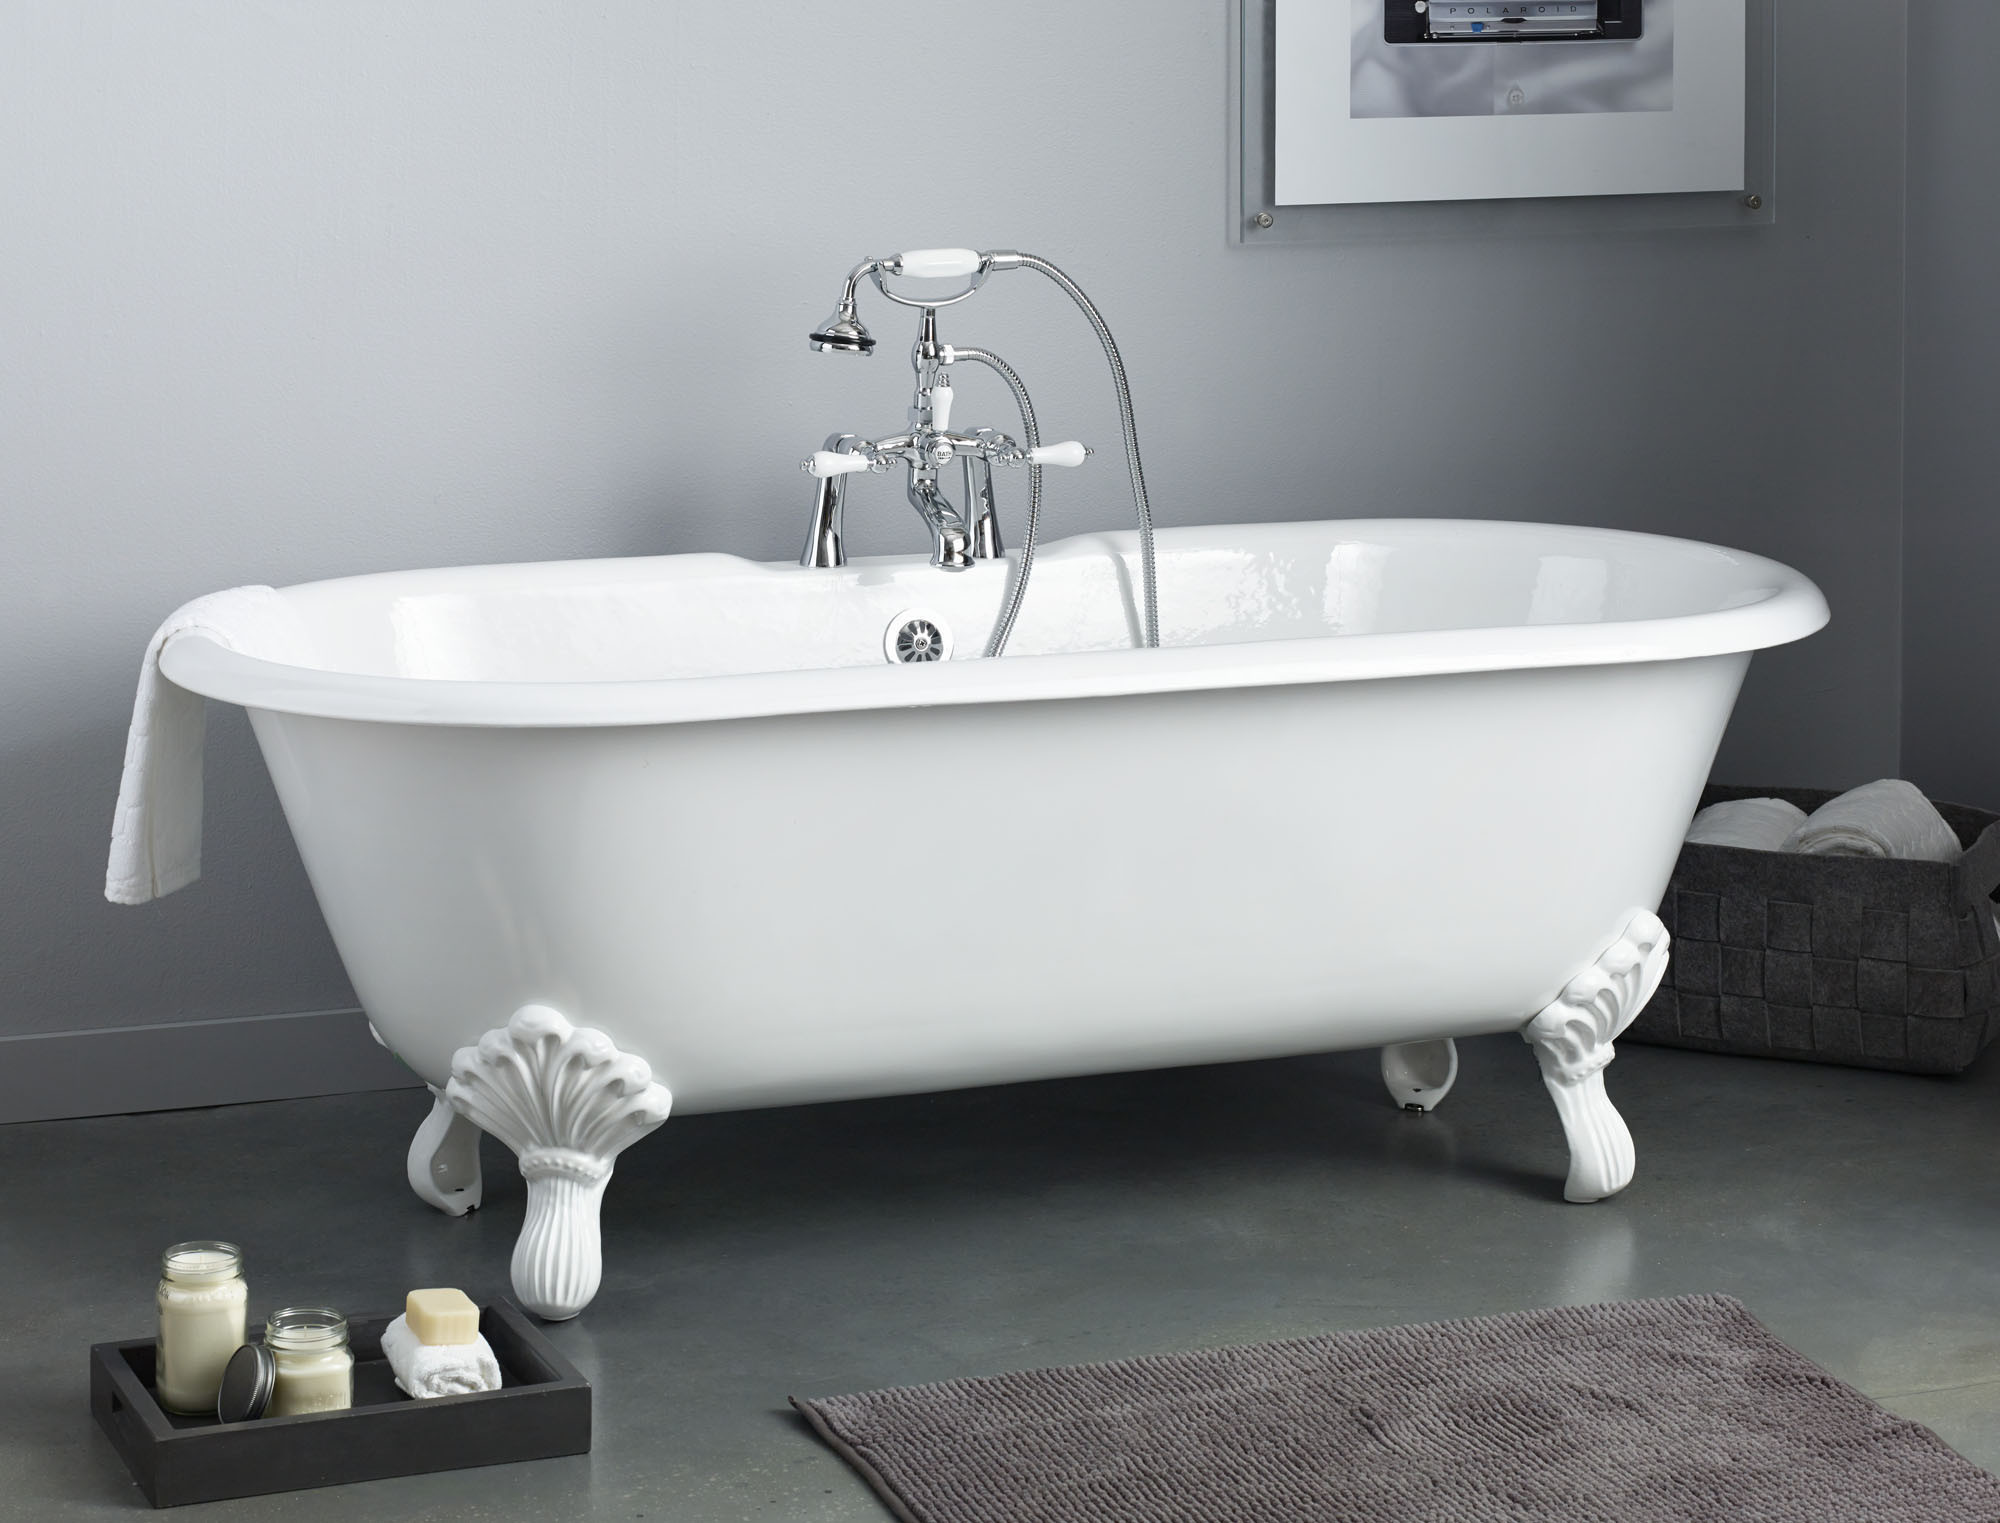 Cheviot 2170-BB-6 Regency Cast Iron Bathtub with Shaughnessy Feet and 6 Inch Drilling